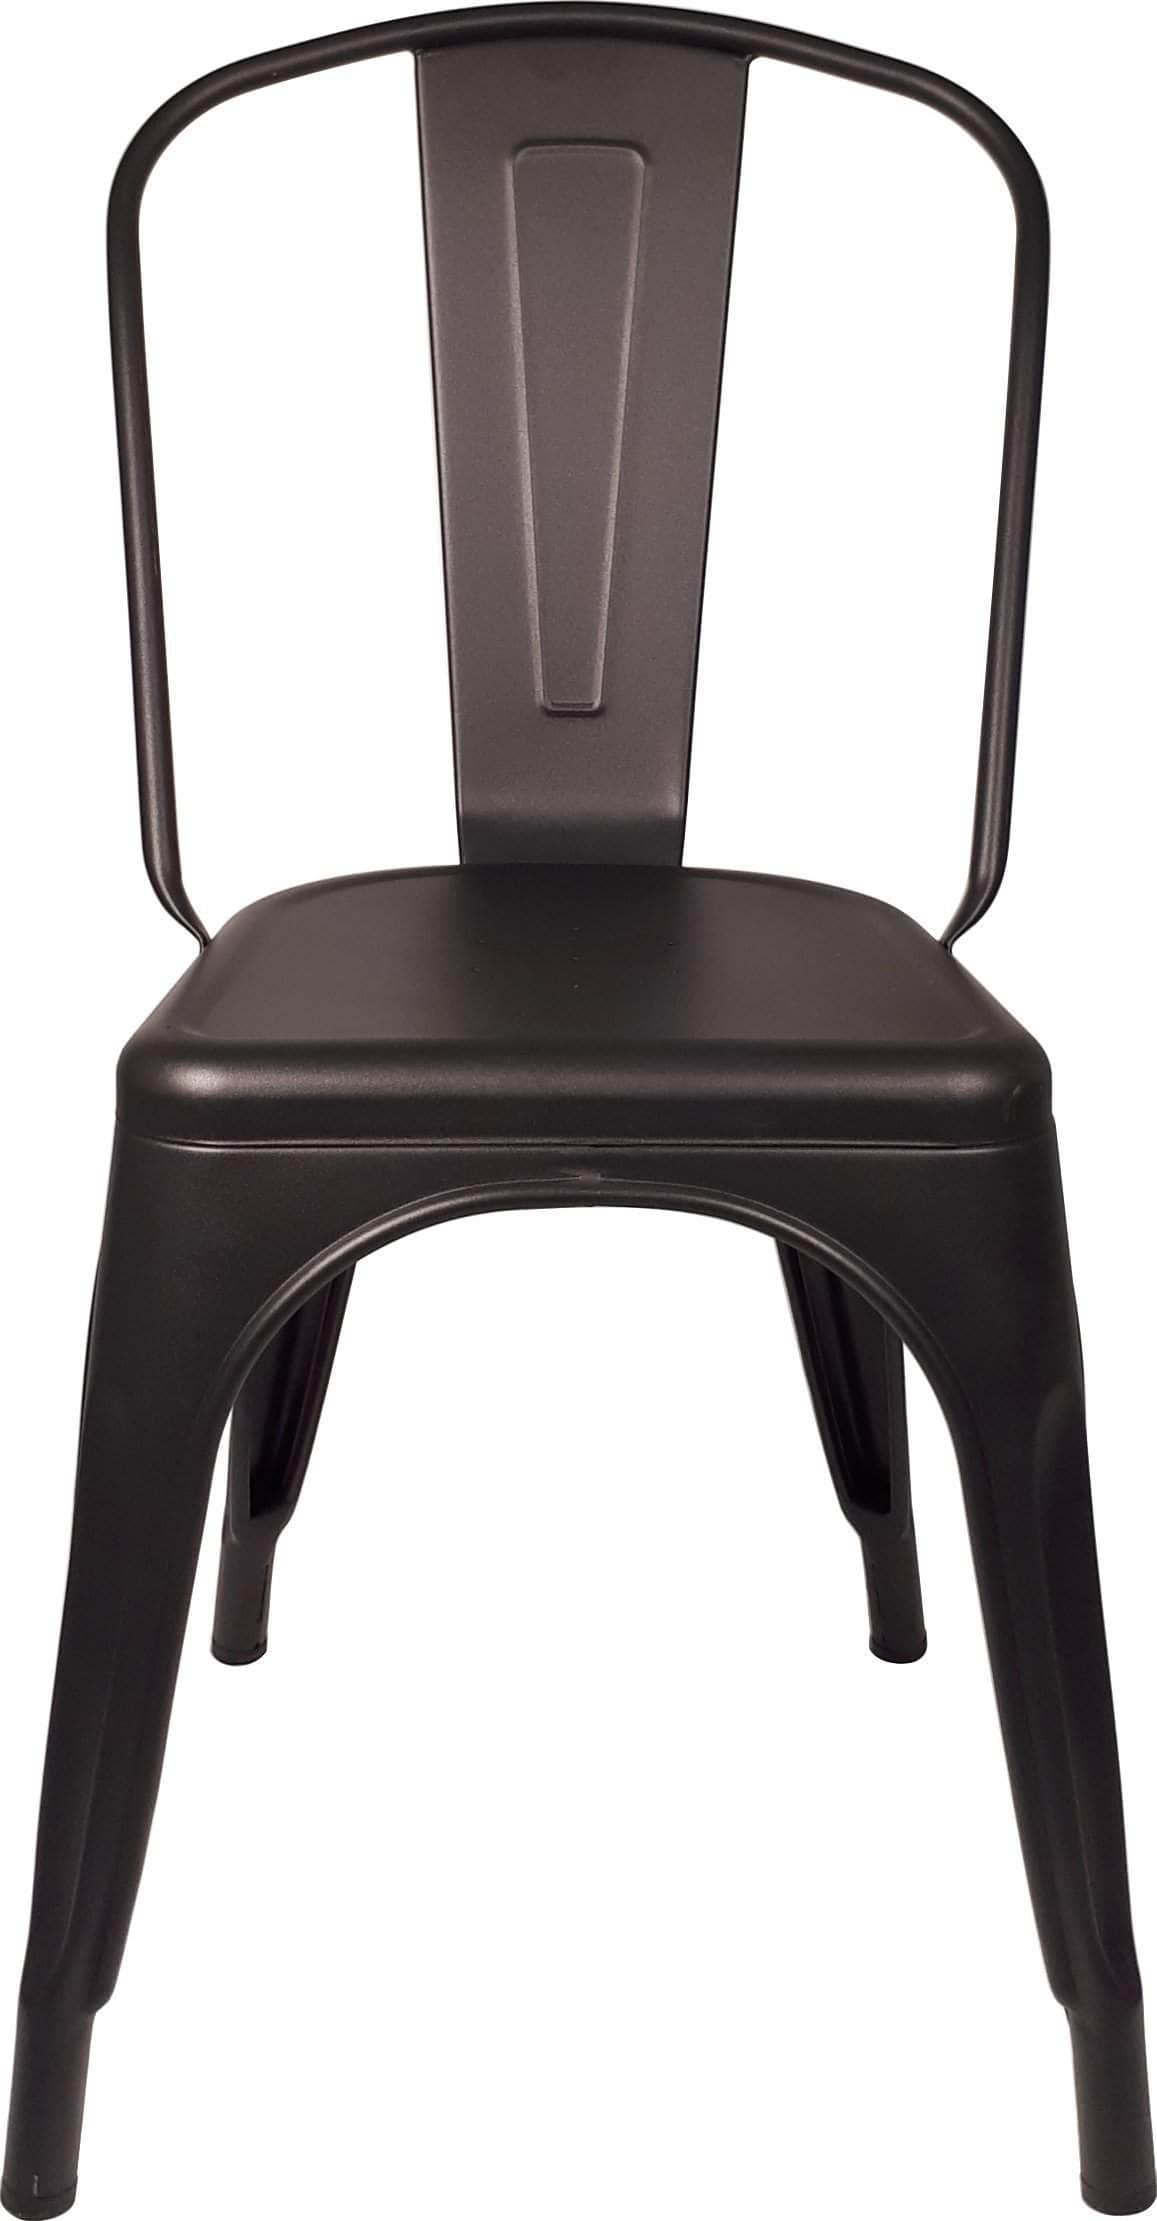 matt black replica tolix cafe chair high back buy online